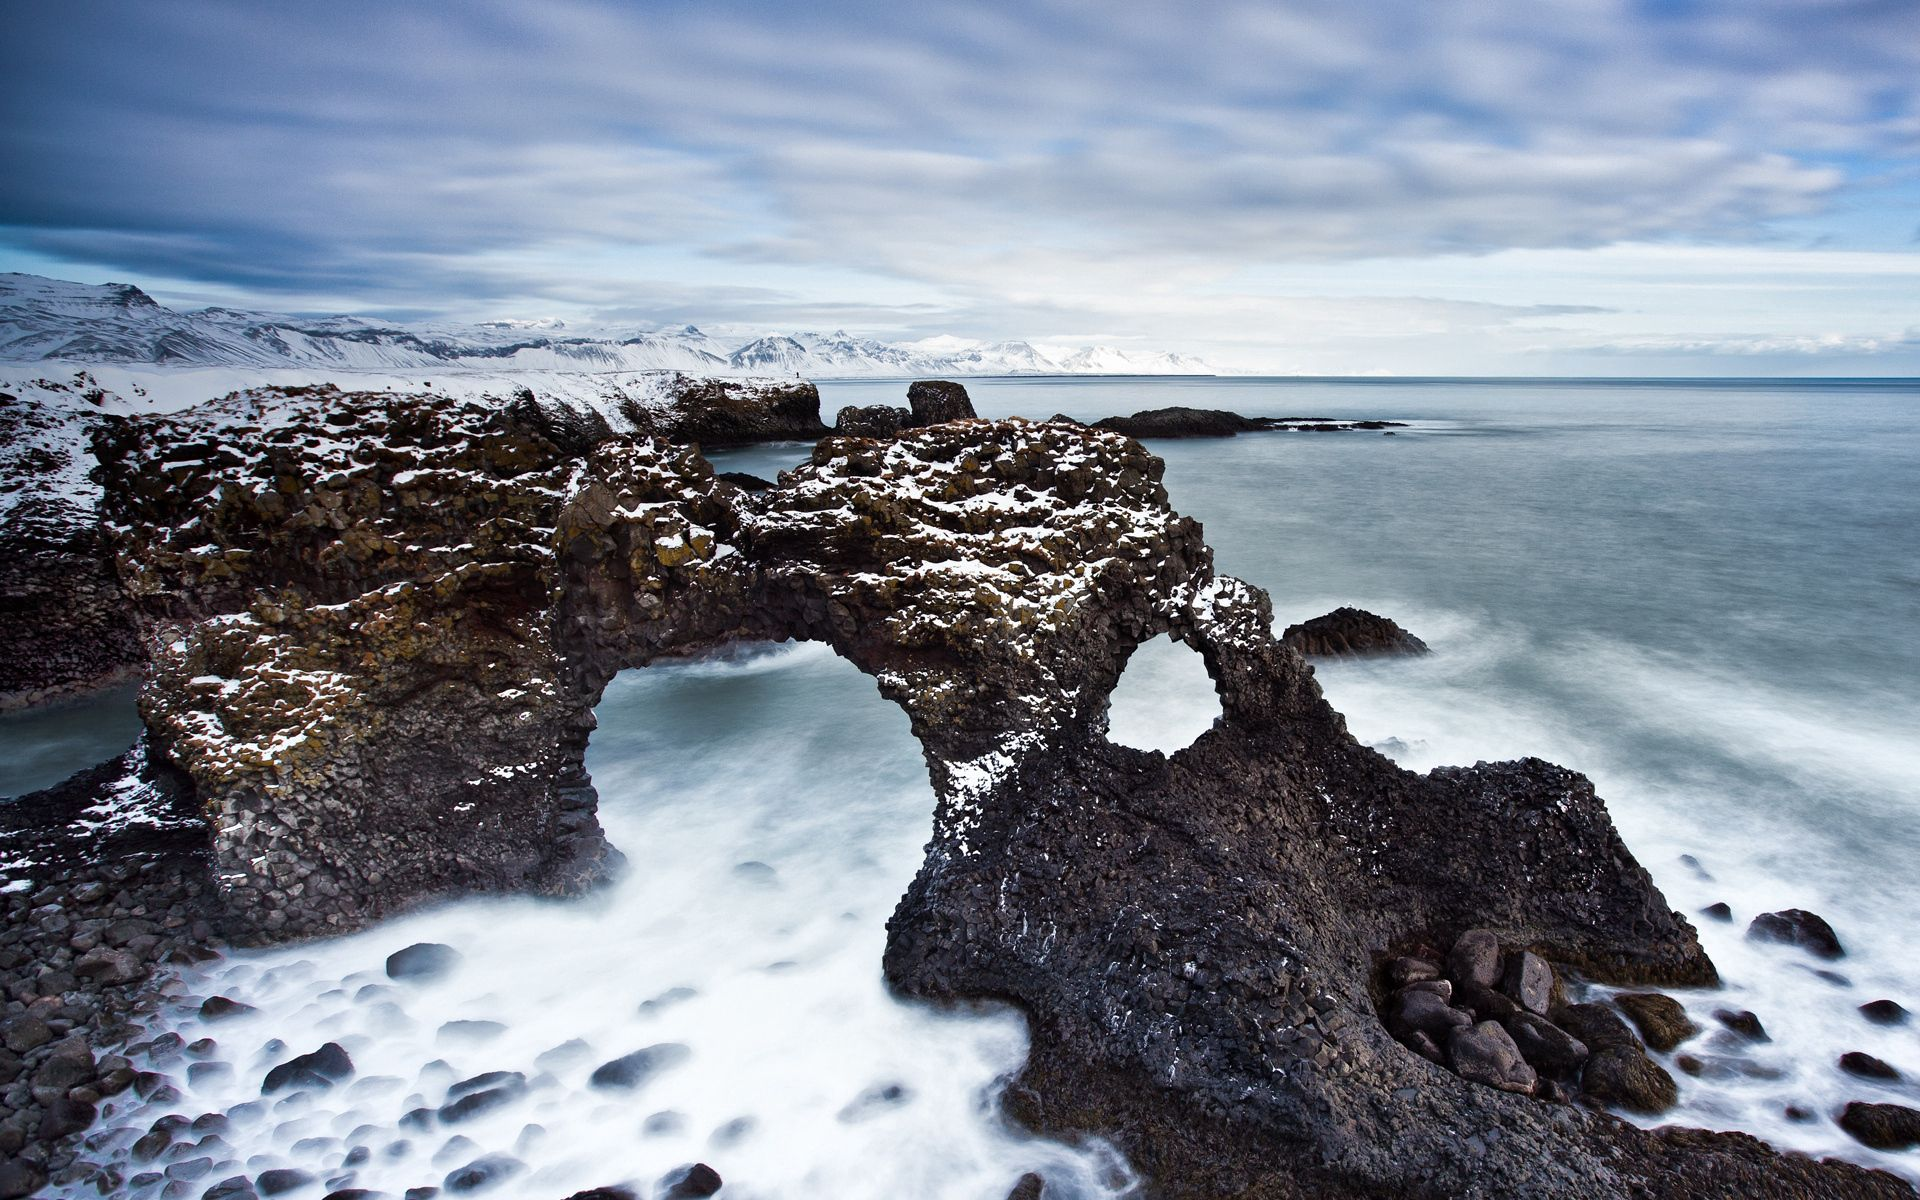 Download wallpaper 1920x1200 reeves arches stony coast cold 1920x1200